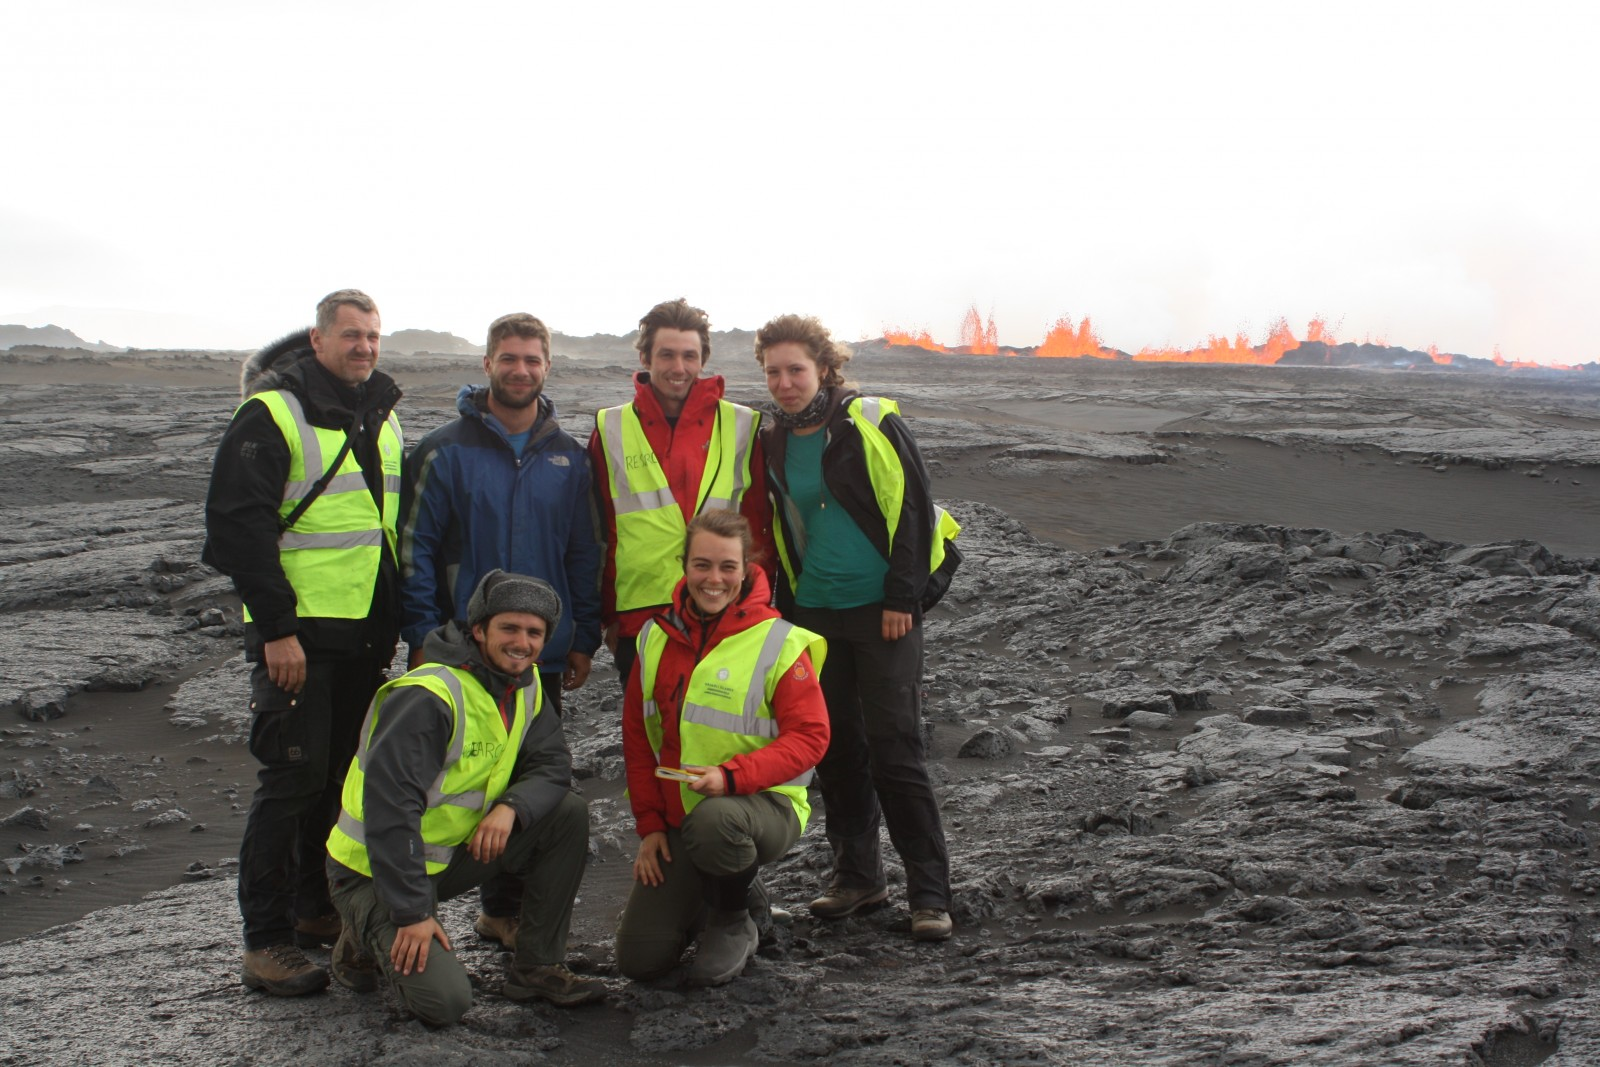 Cambridge Volcano seismology group in front of the fissure eruption on the first day of the 2014-15 Bárðarbunga-Holuhraun eruption.